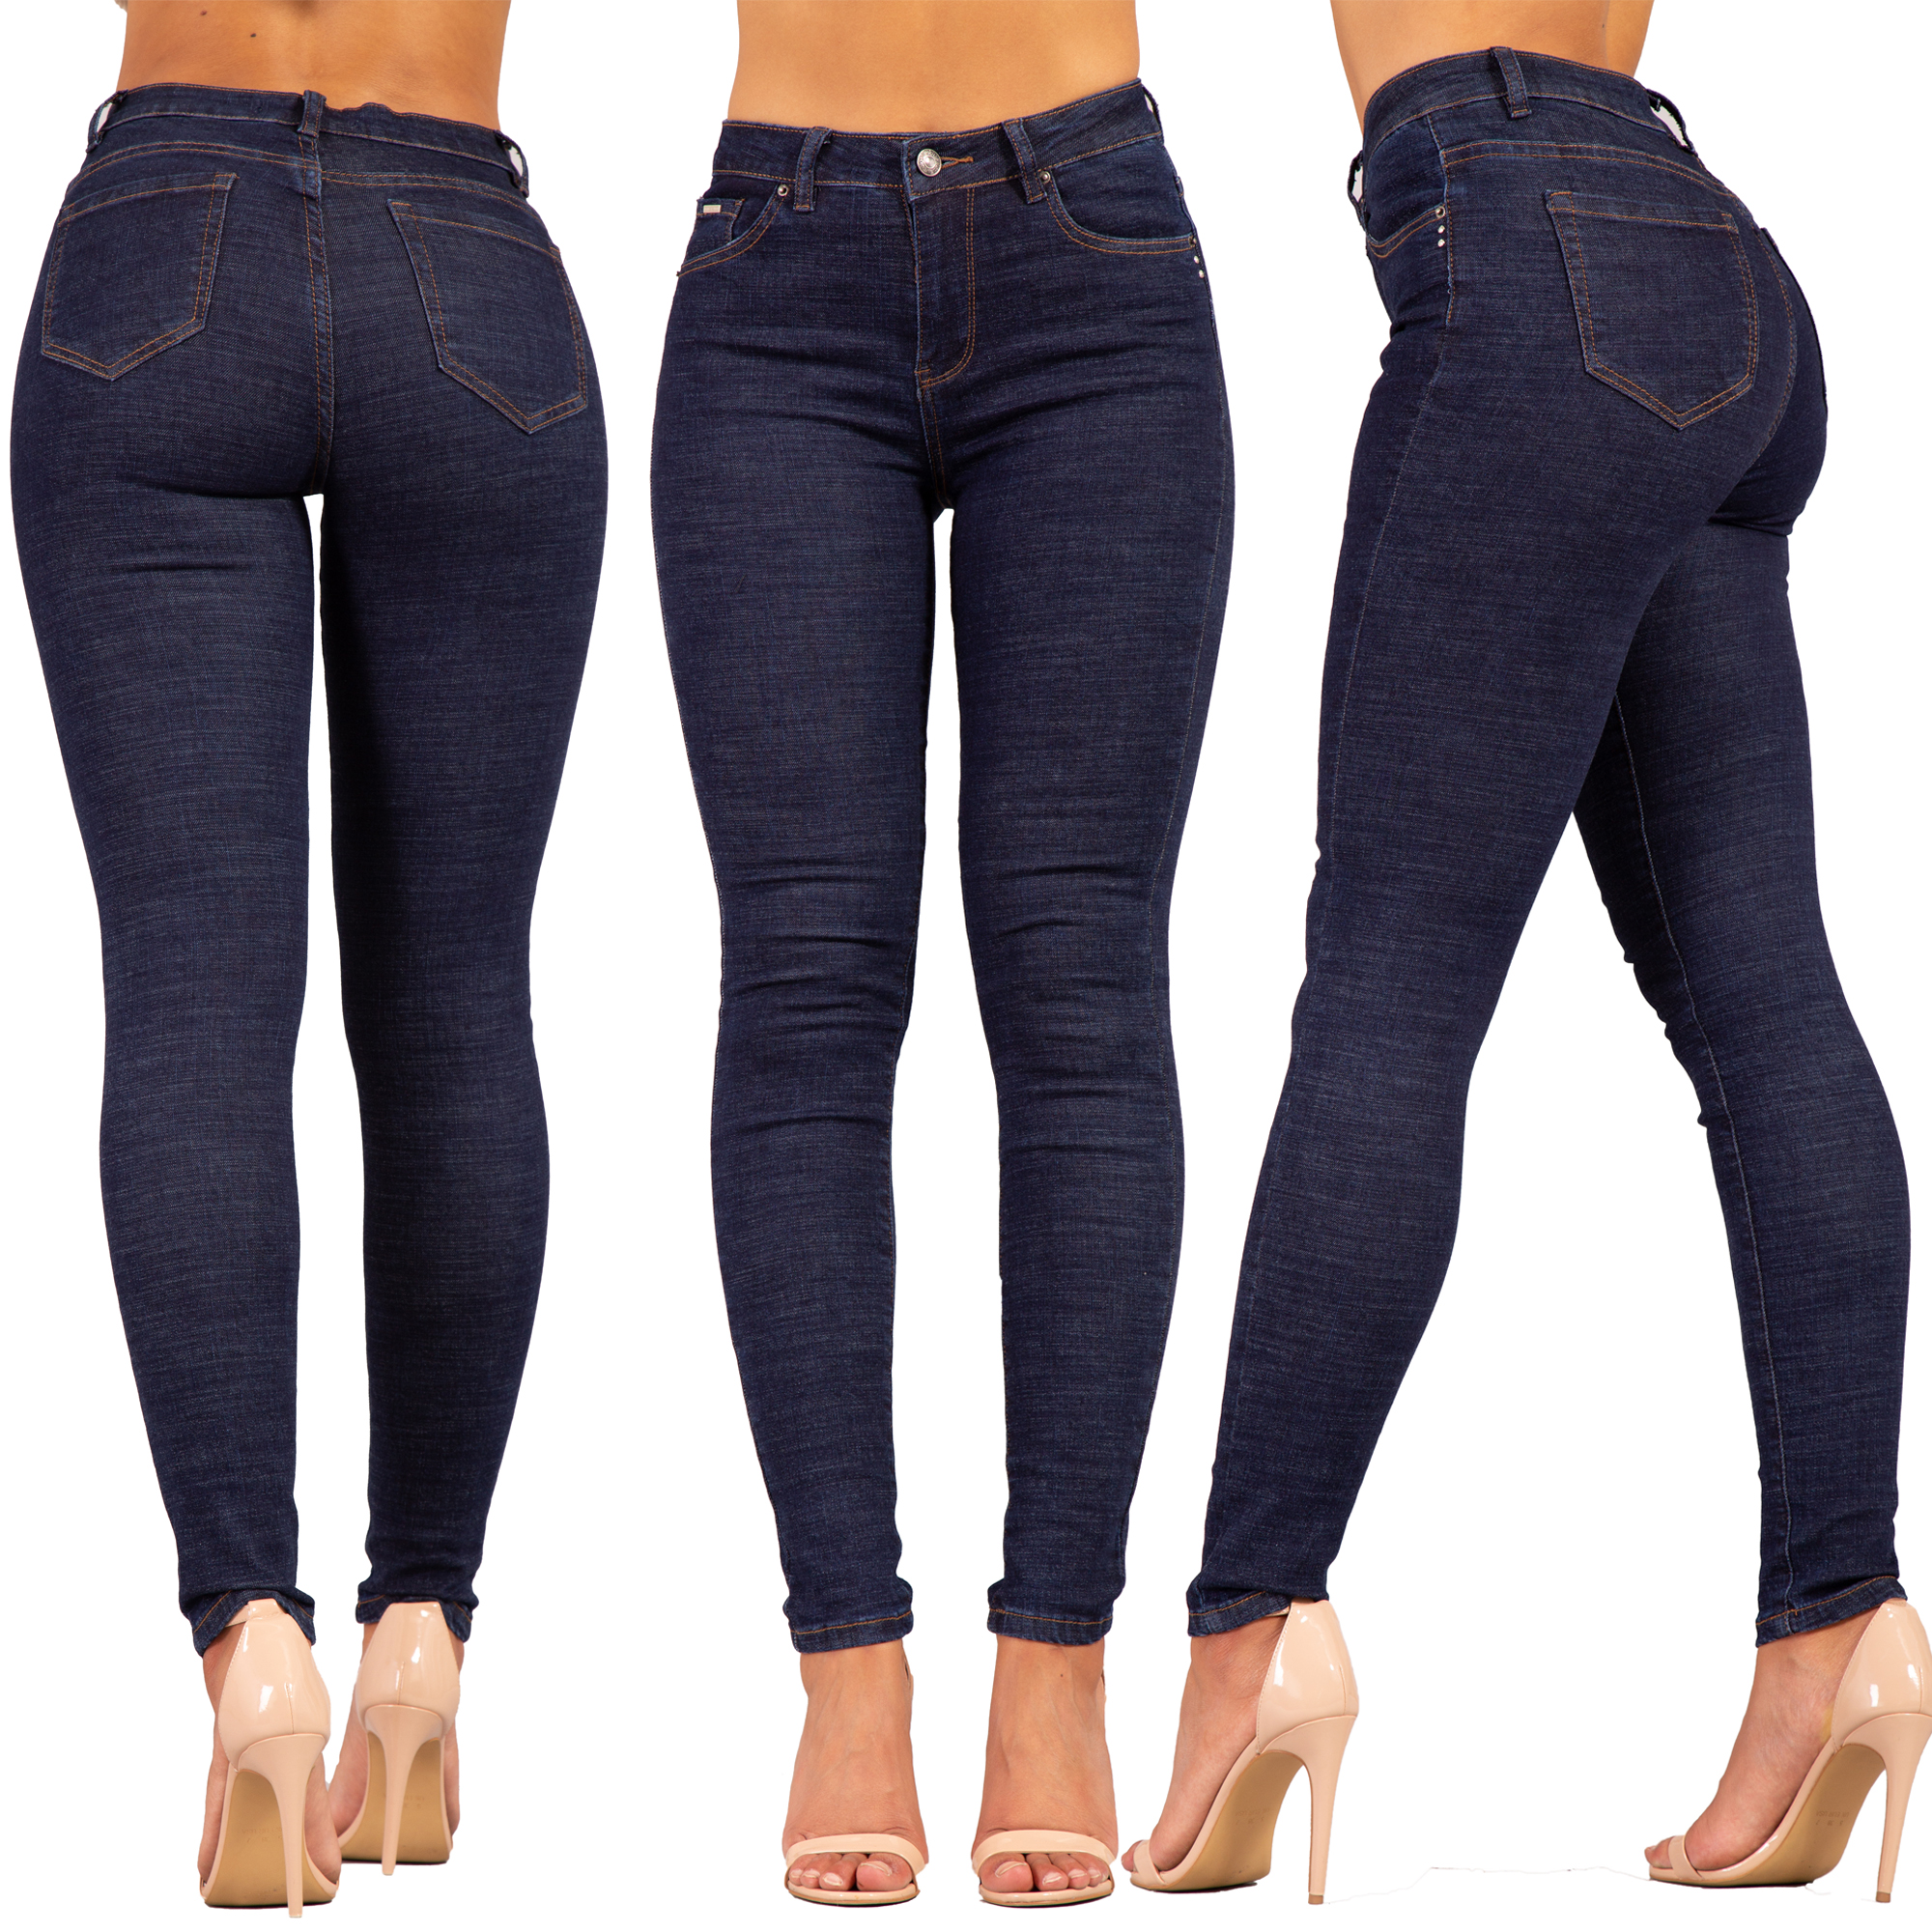 1c12af741b WOMENS HIGH WAISTED JEANS LADIES STRETCH HIGH RISE SKINNY PANTS SIZE 6-14